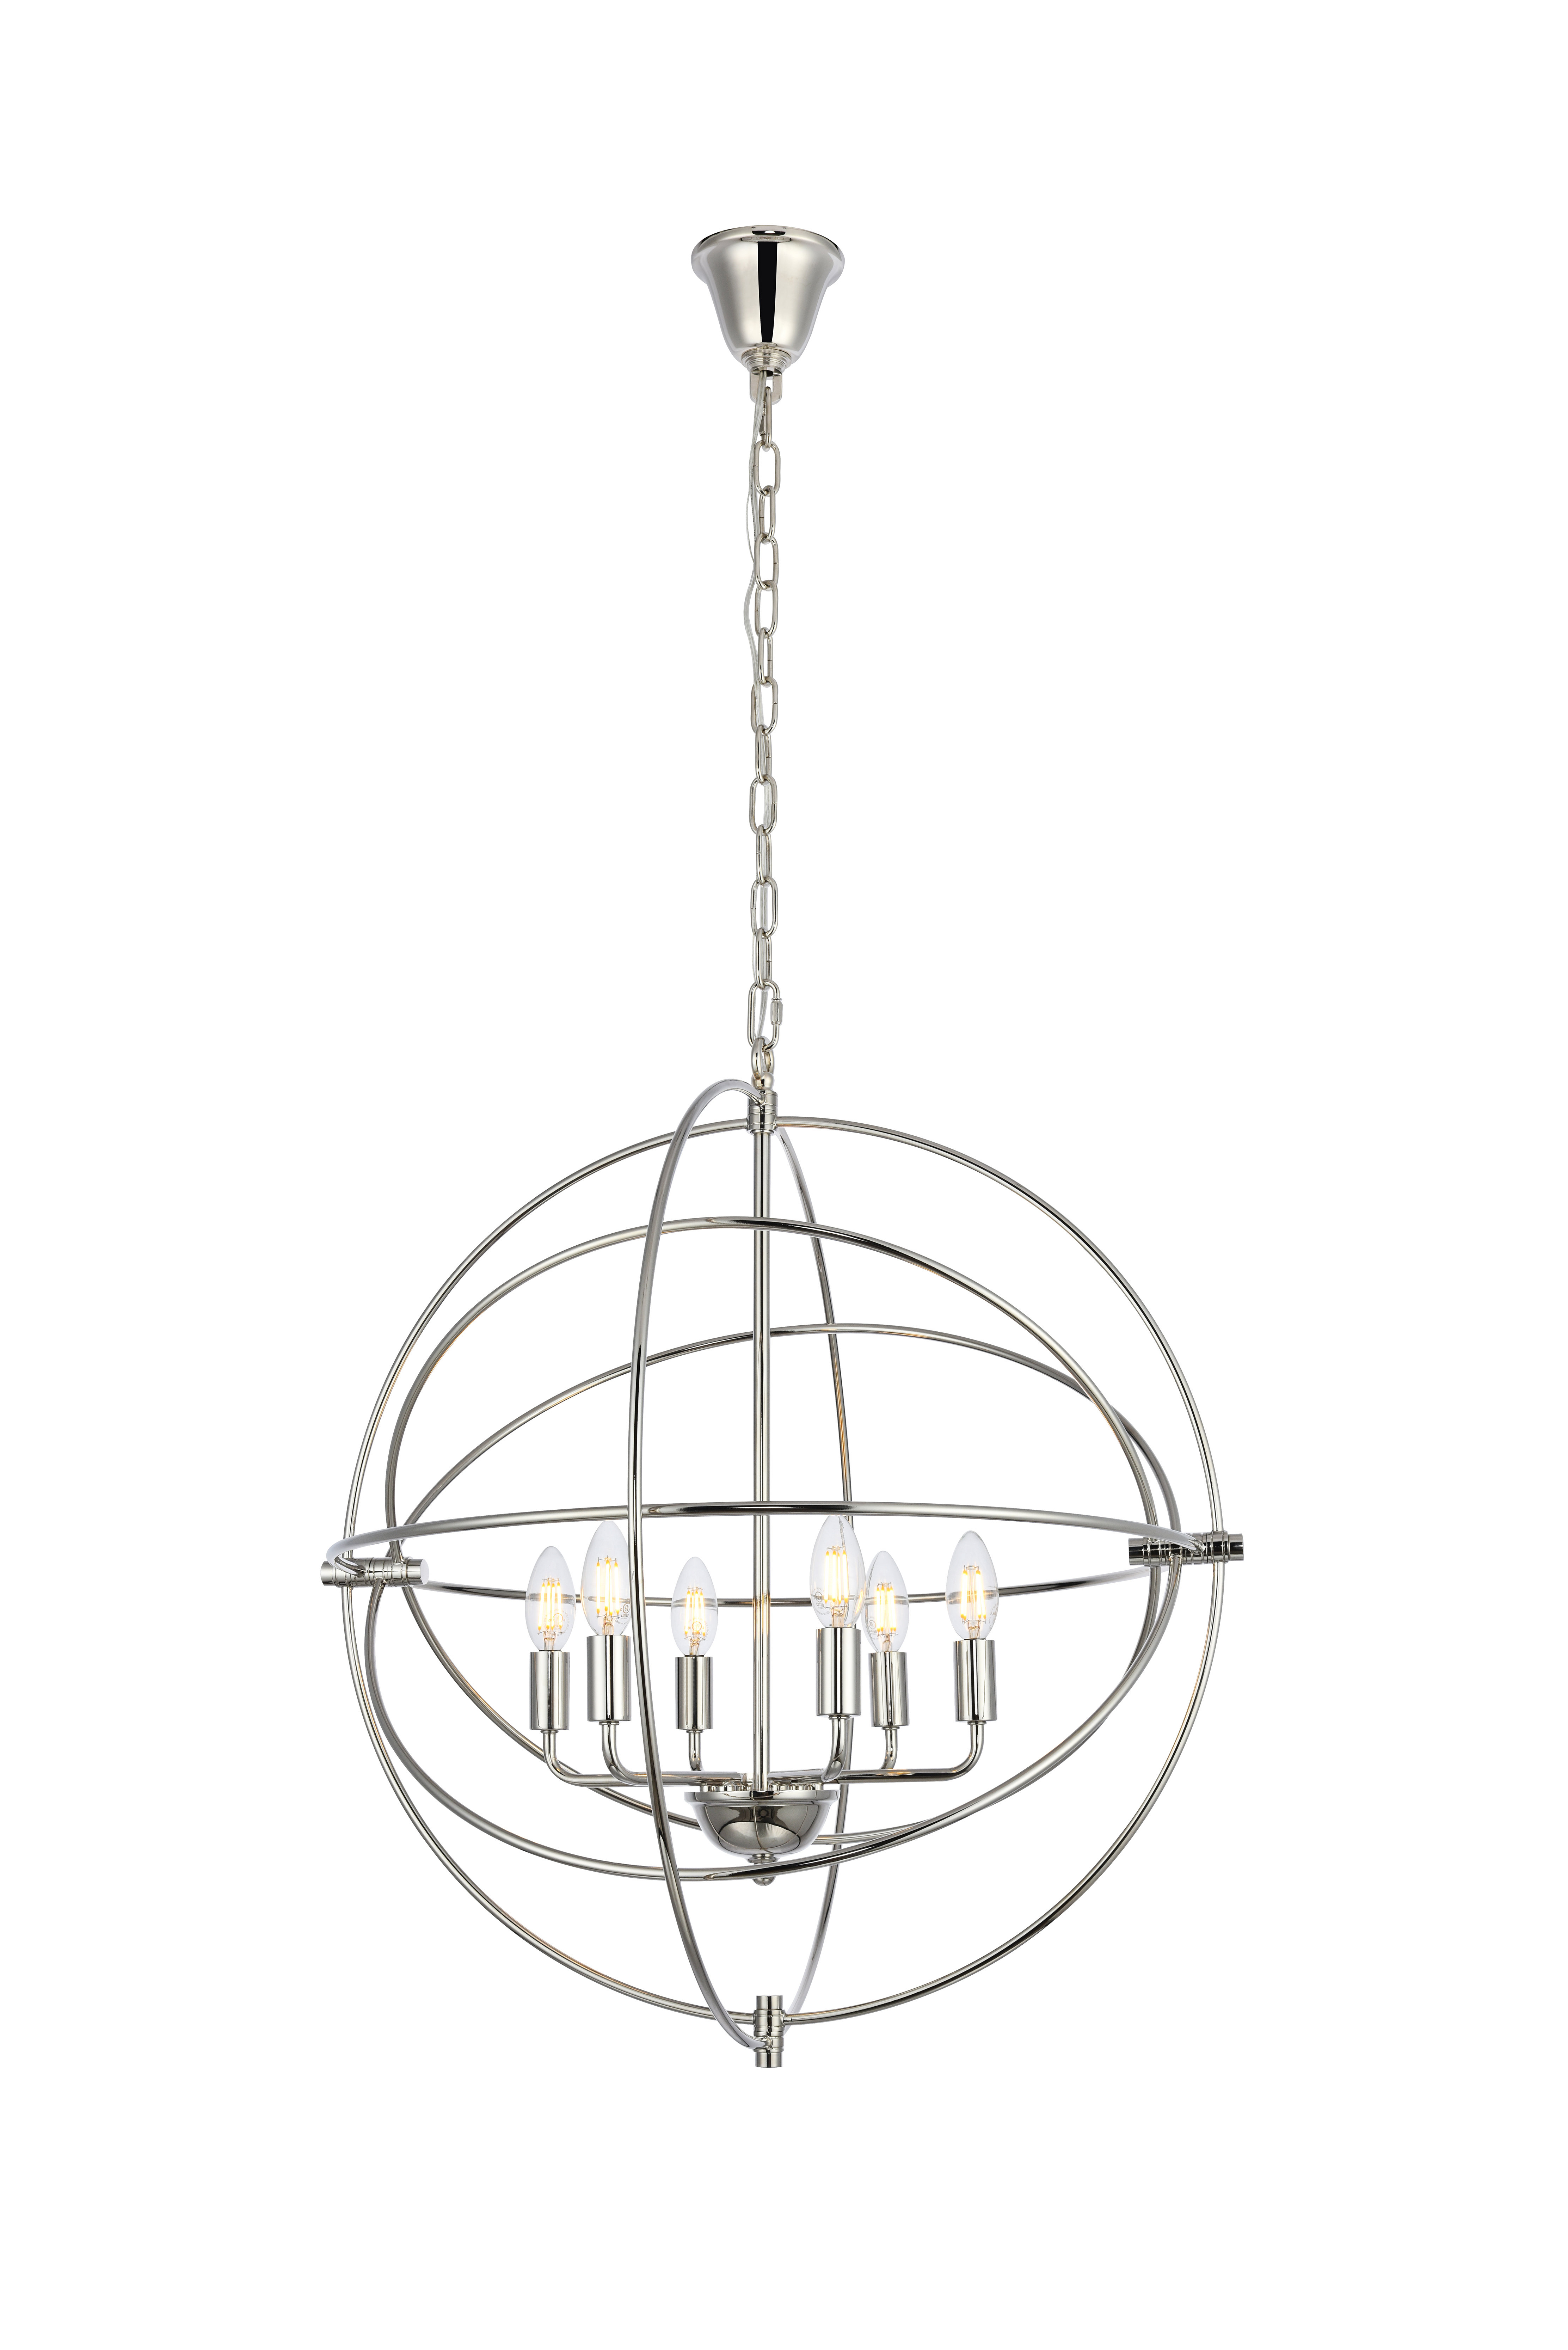 2019 Donna 6 Light Globe Chandeliers Pertaining To Hamby 6 Light Globe Chandelier (View 2 of 20)